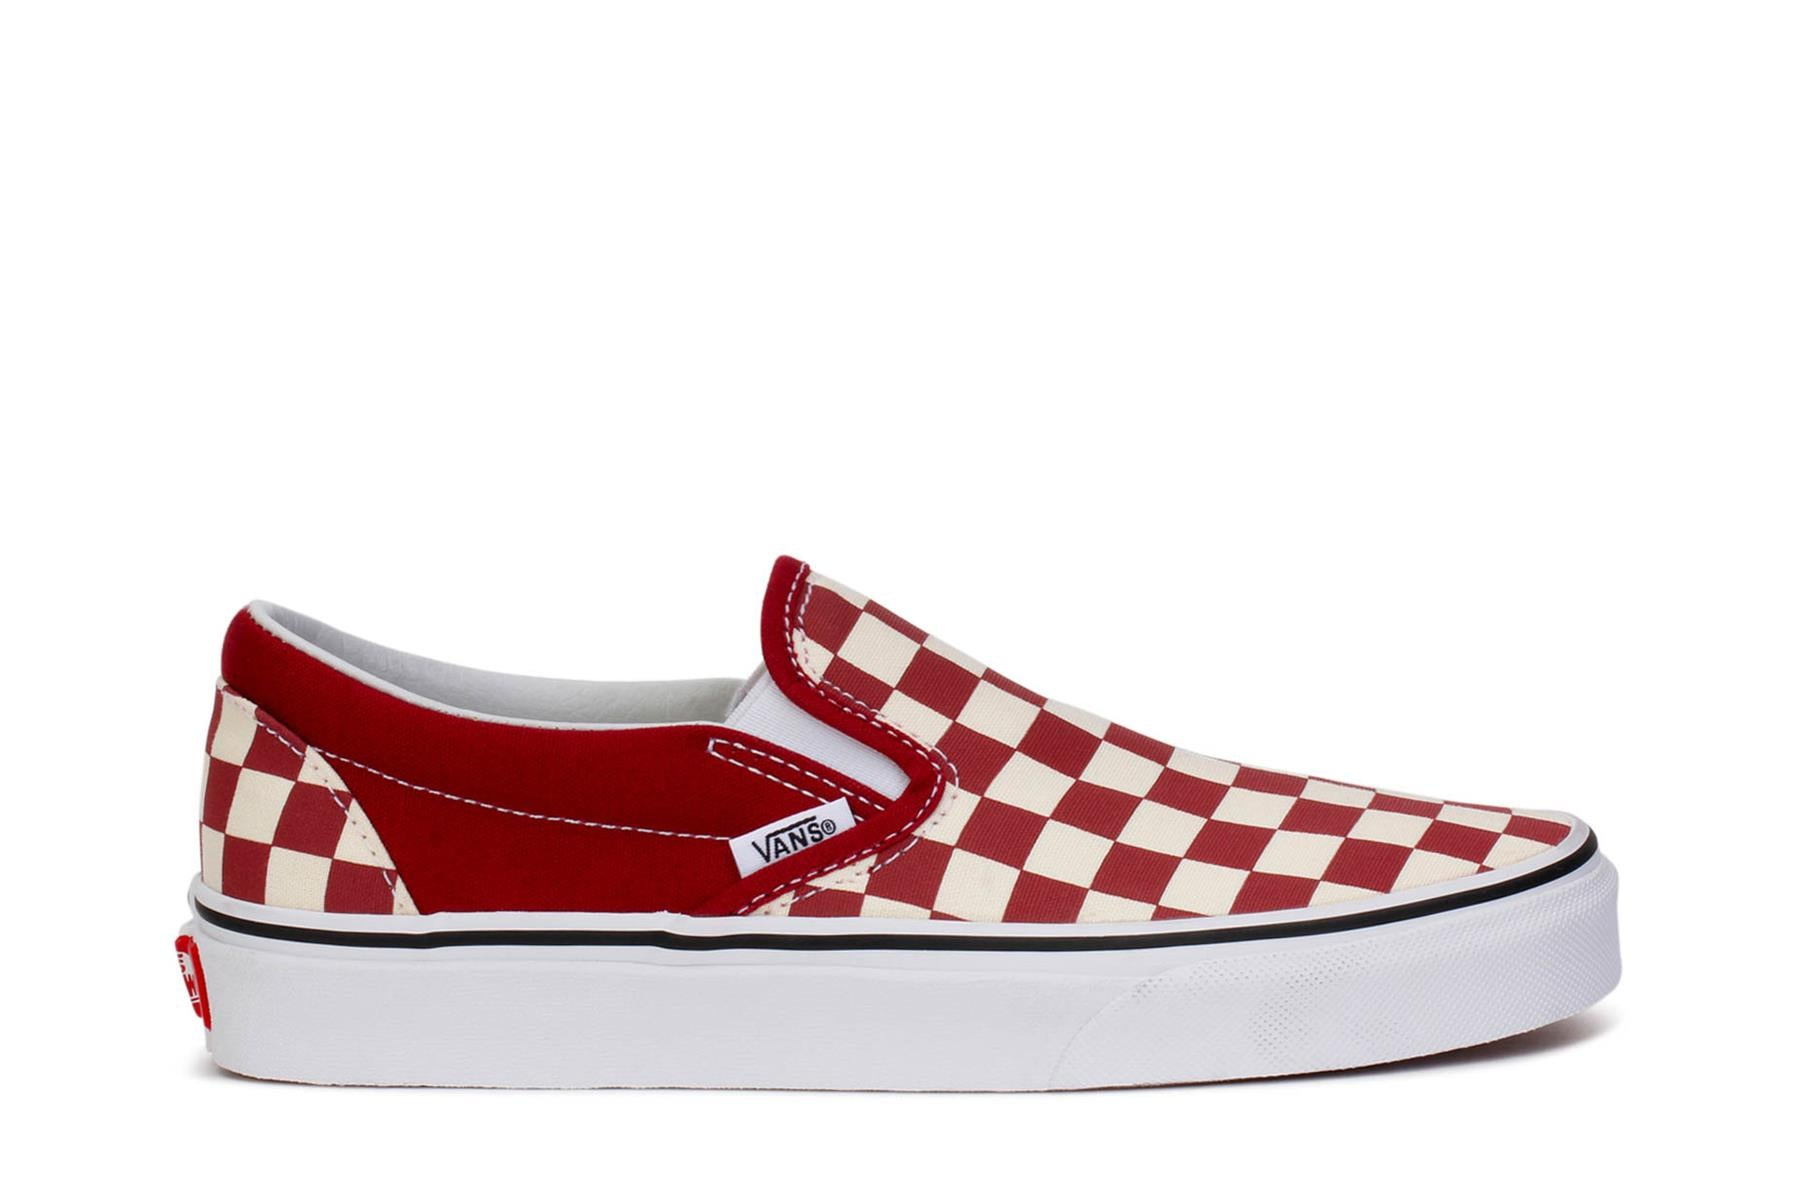 vans-adult-sneakers-classic-slip-on-checkerboard-rumba-red-true-white-vn0a38f7vlw-main